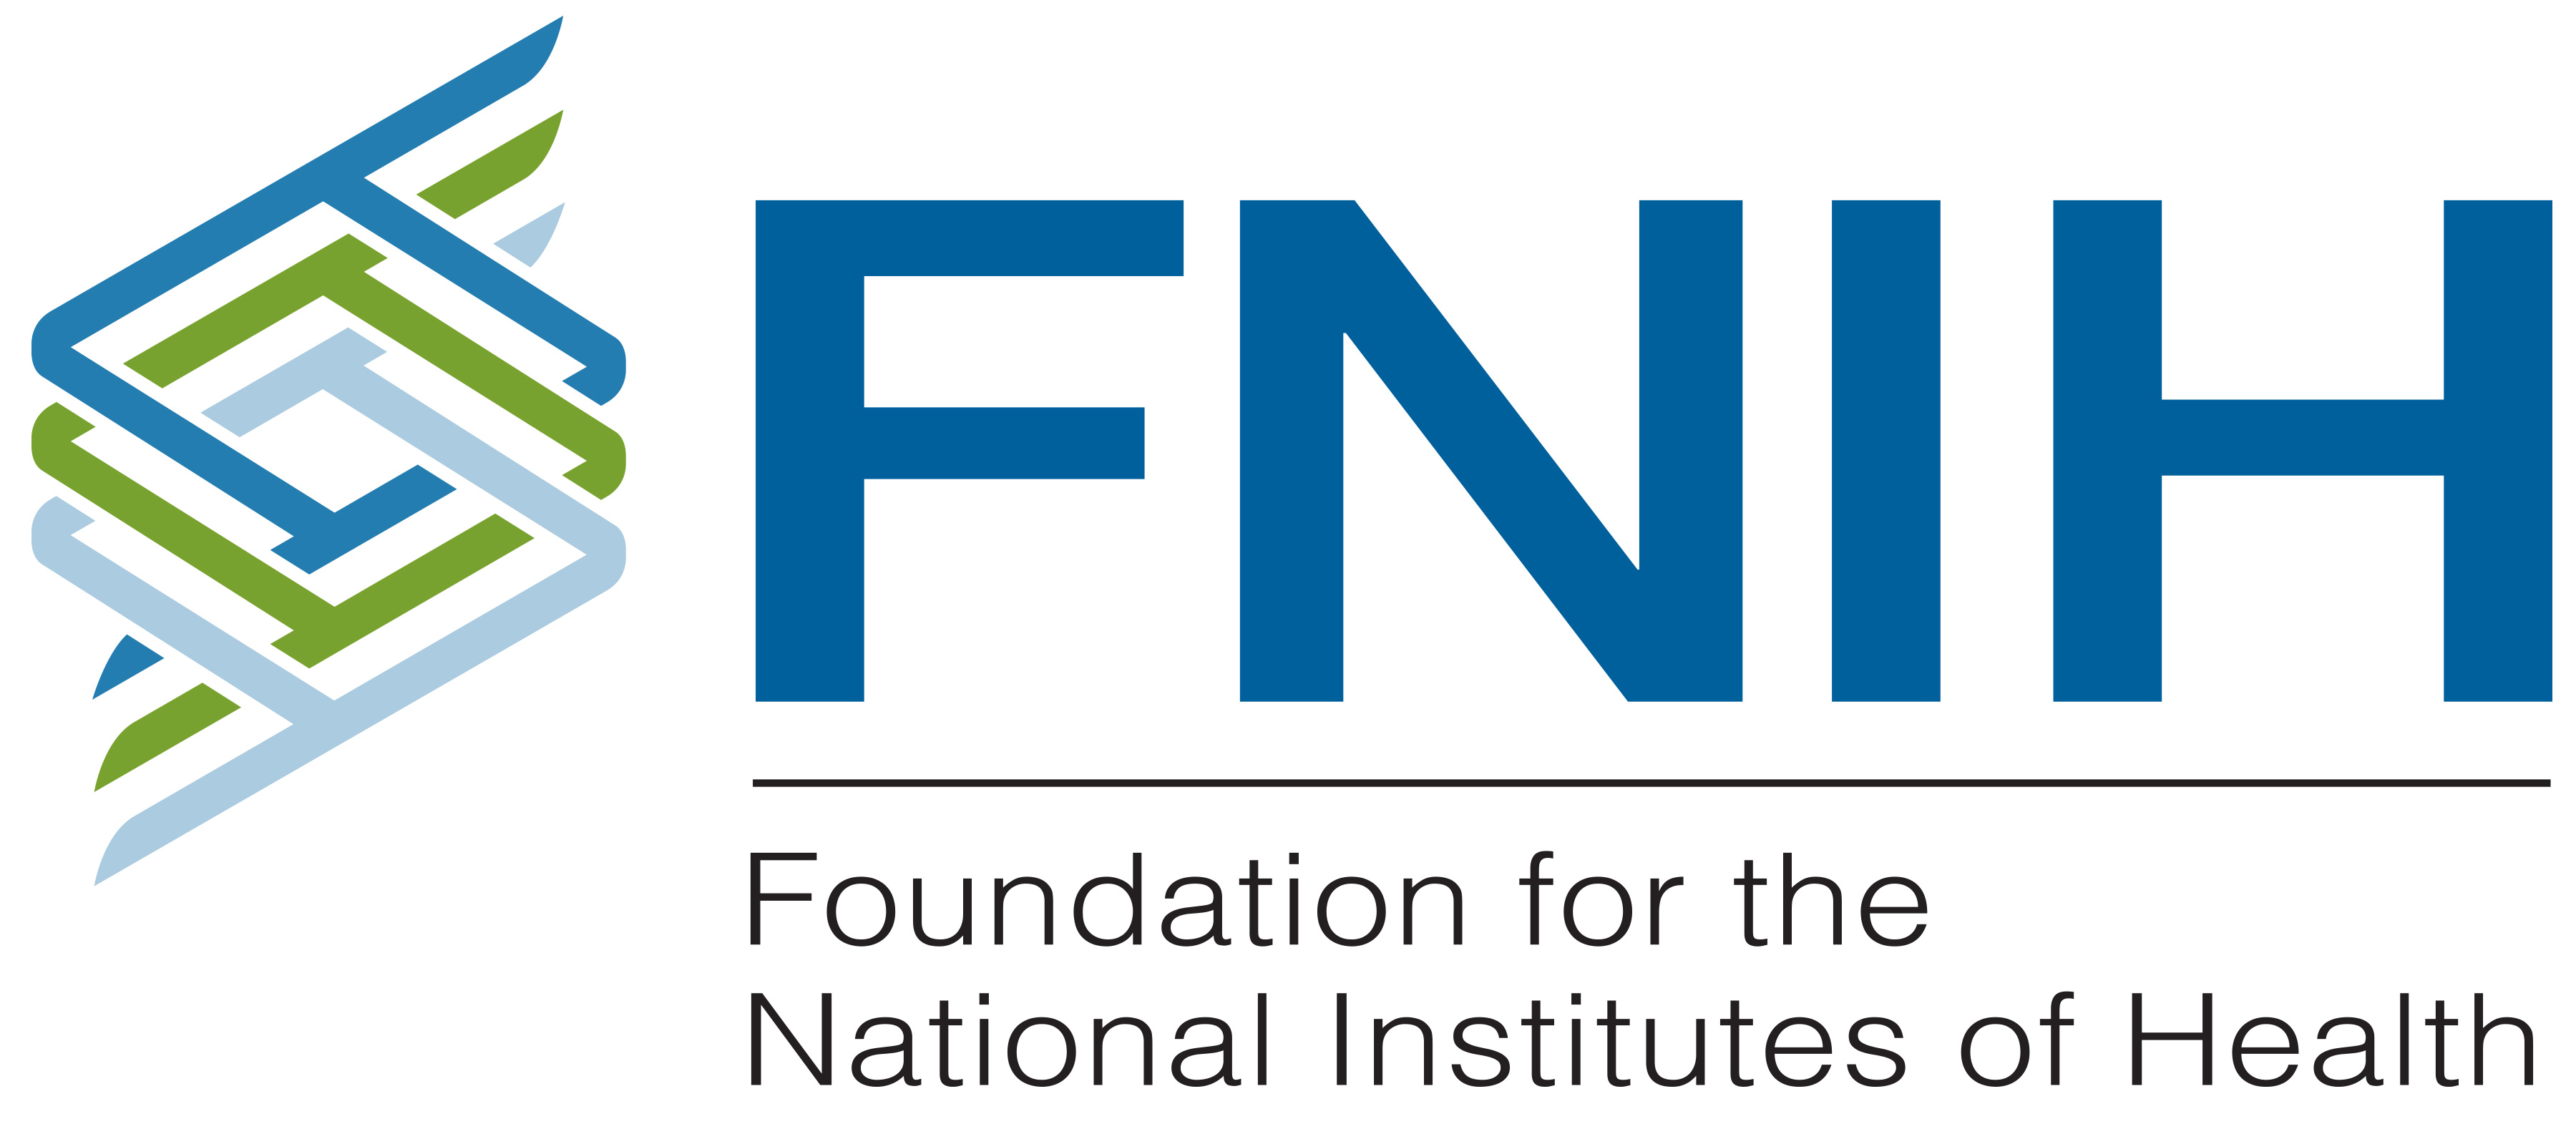 Foundation for the National Institutes of Health logo